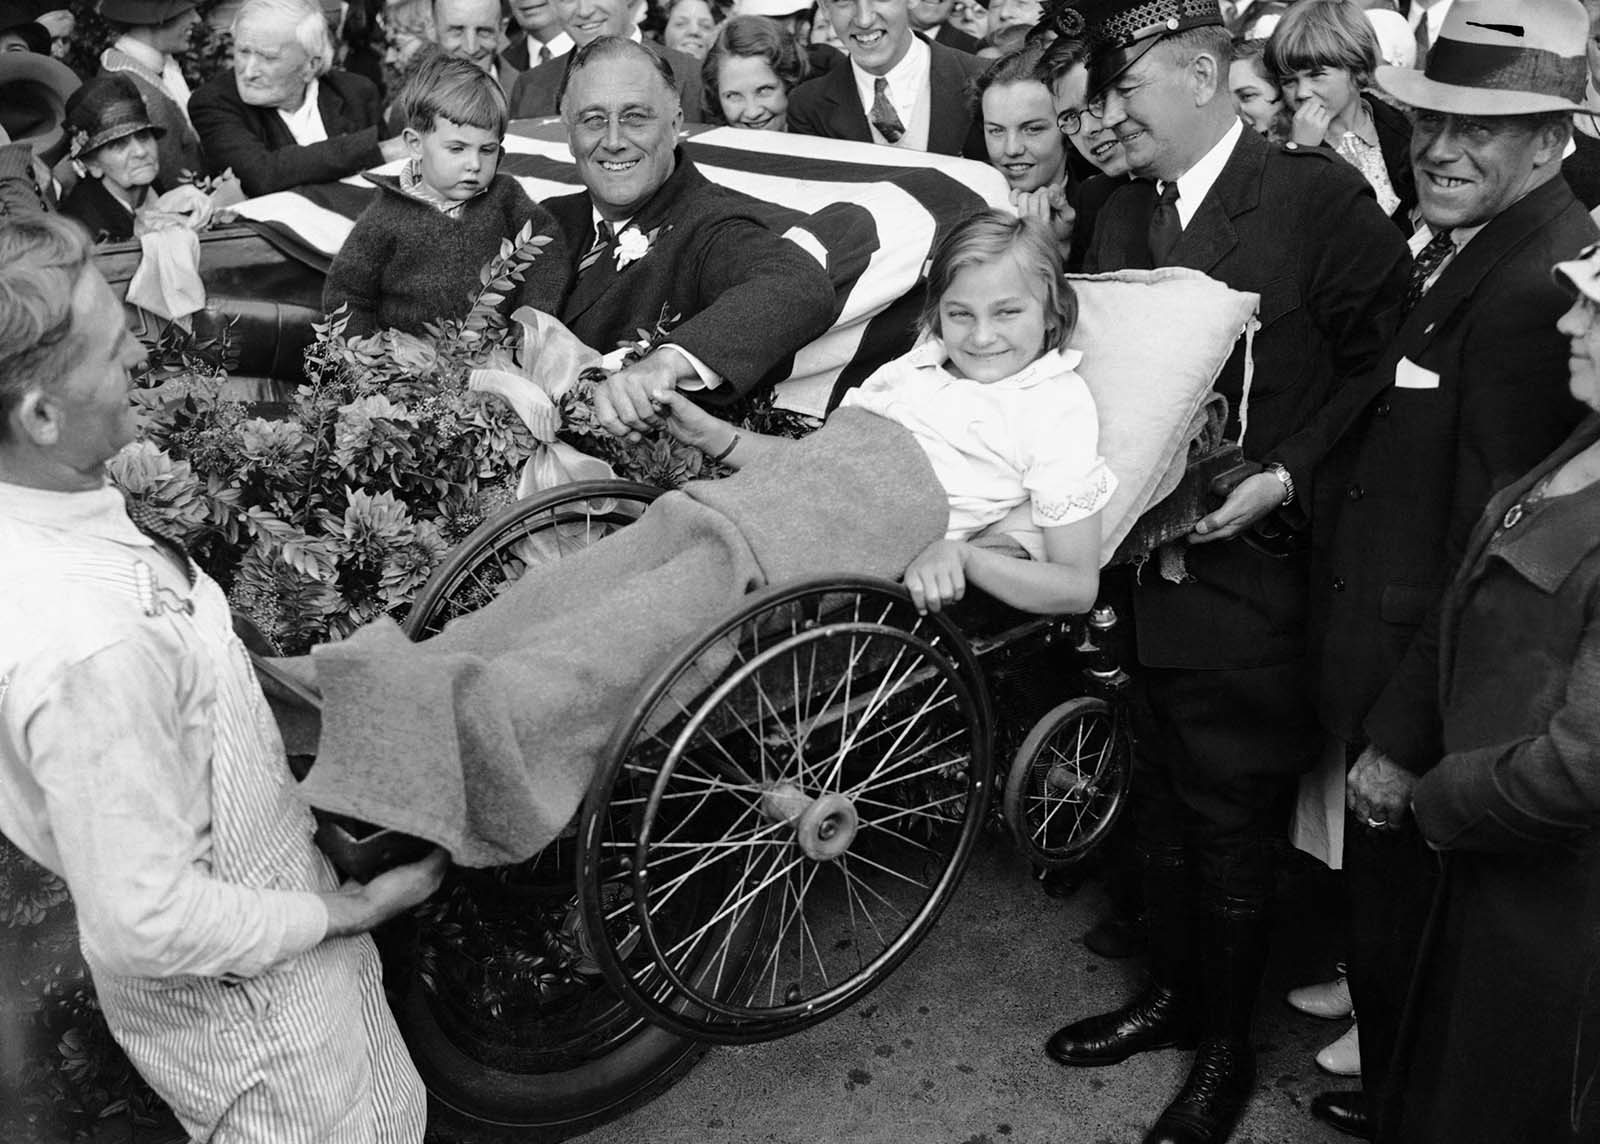 Franklin D. Roosevelt contracted polio in 1921 at age 39. Here, two men lift a little girl in a wheelchair so that Roosevelt can greet her from his vehicle during his first presidential campaign.